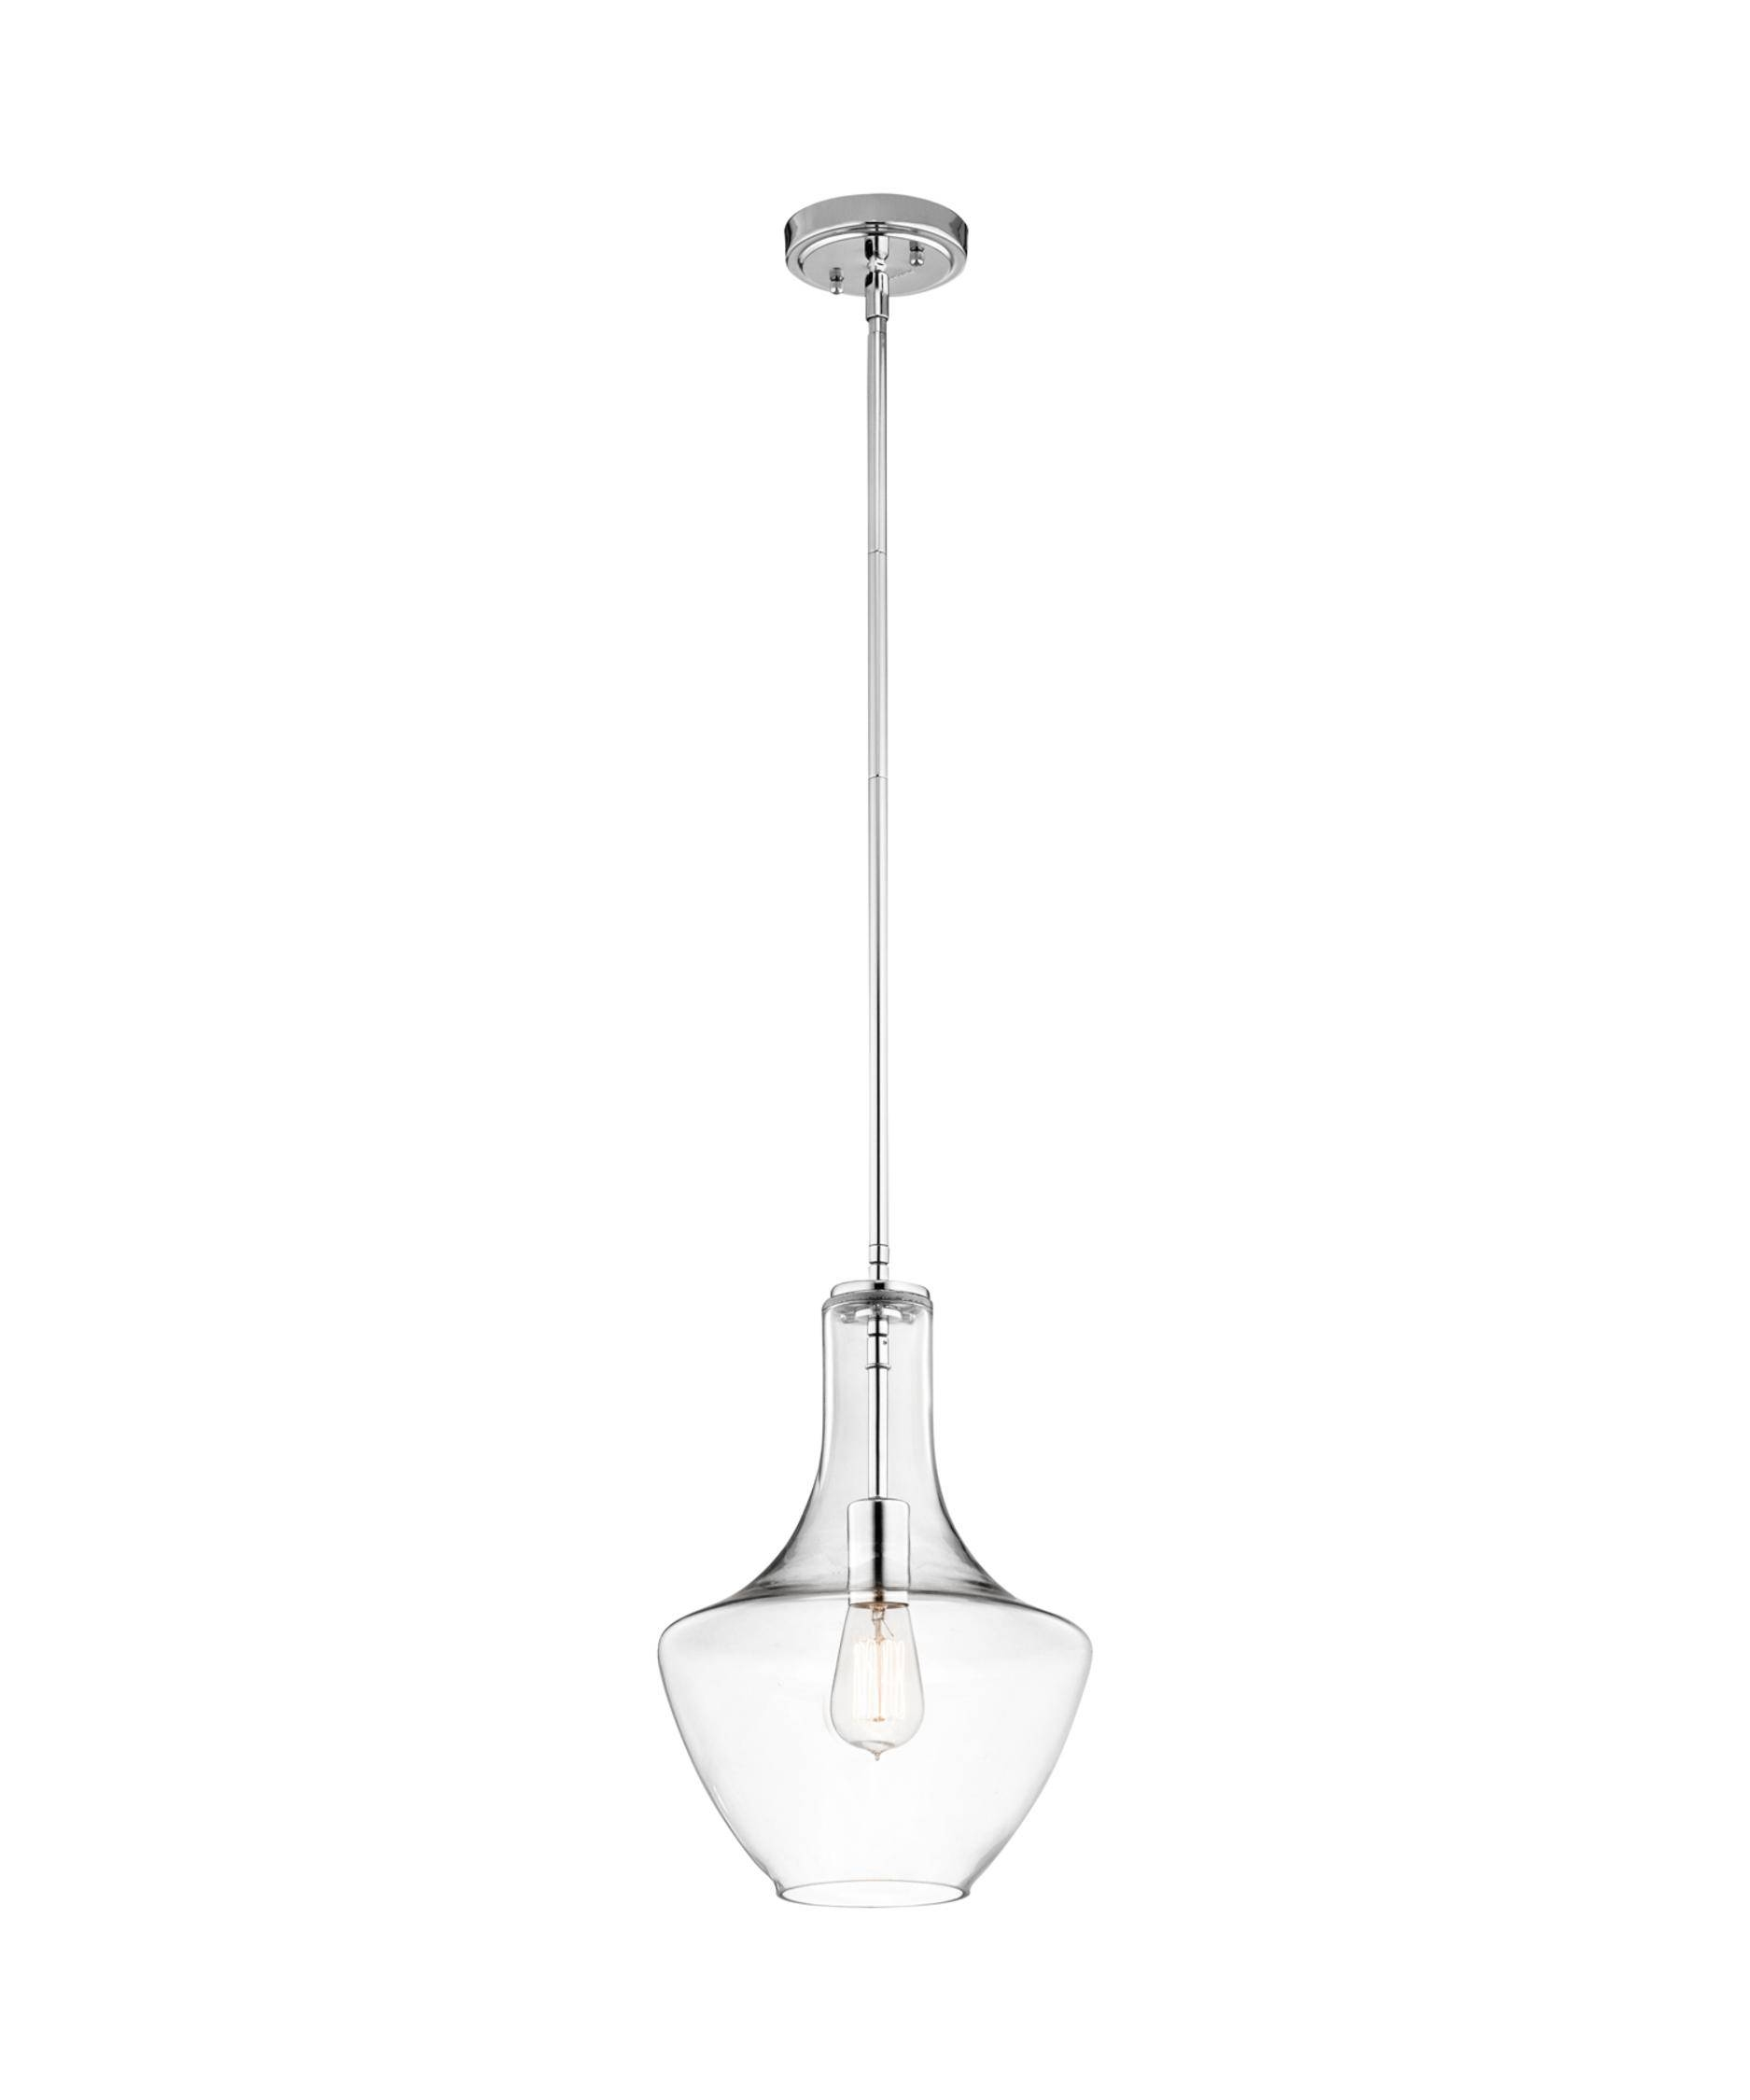 Mini Pendant Lights: Led, Incandescent Mini Pendants | Capitol with Miniature Pendant Lights (Image 10 of 15)